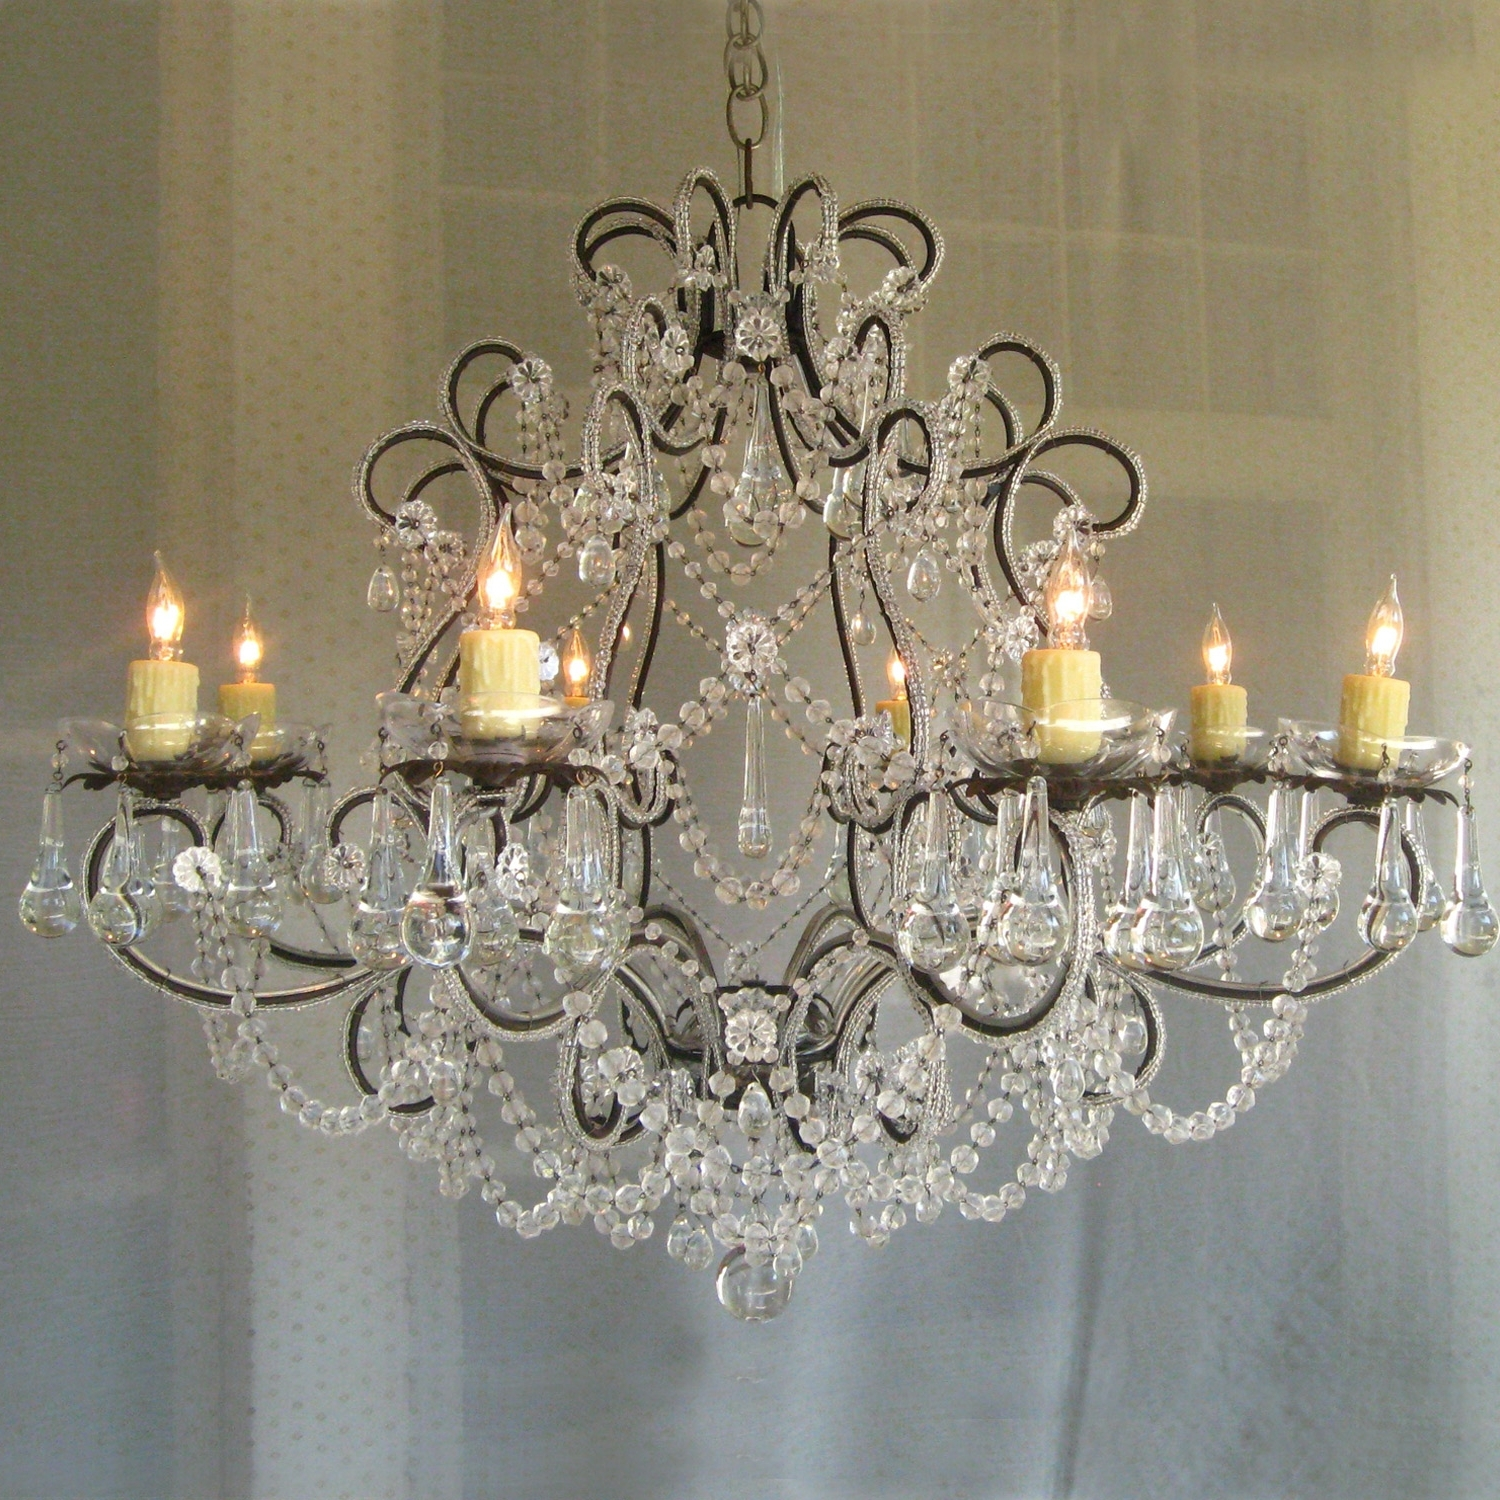 Small Shabby Chic Chandelier For Well Known Chandelier (View 12 of 15)